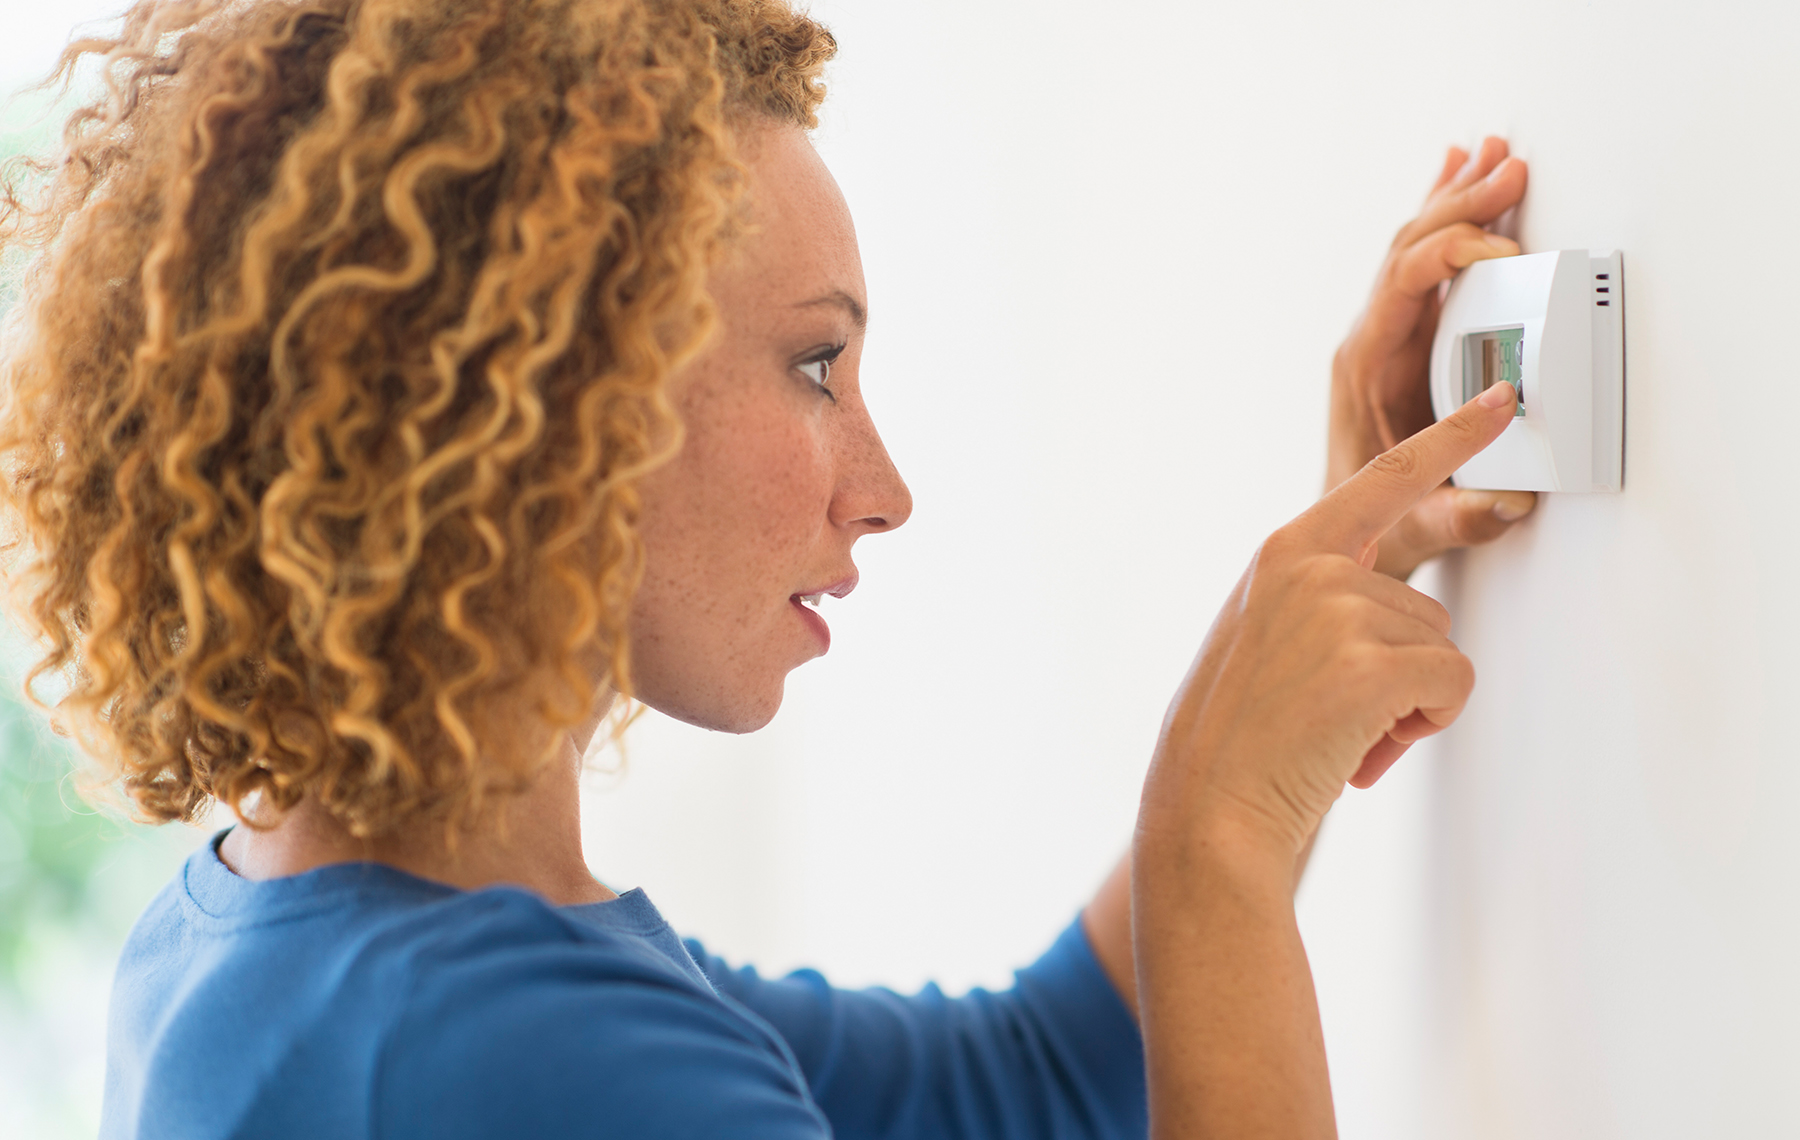 AltaMed woman changing thermostat